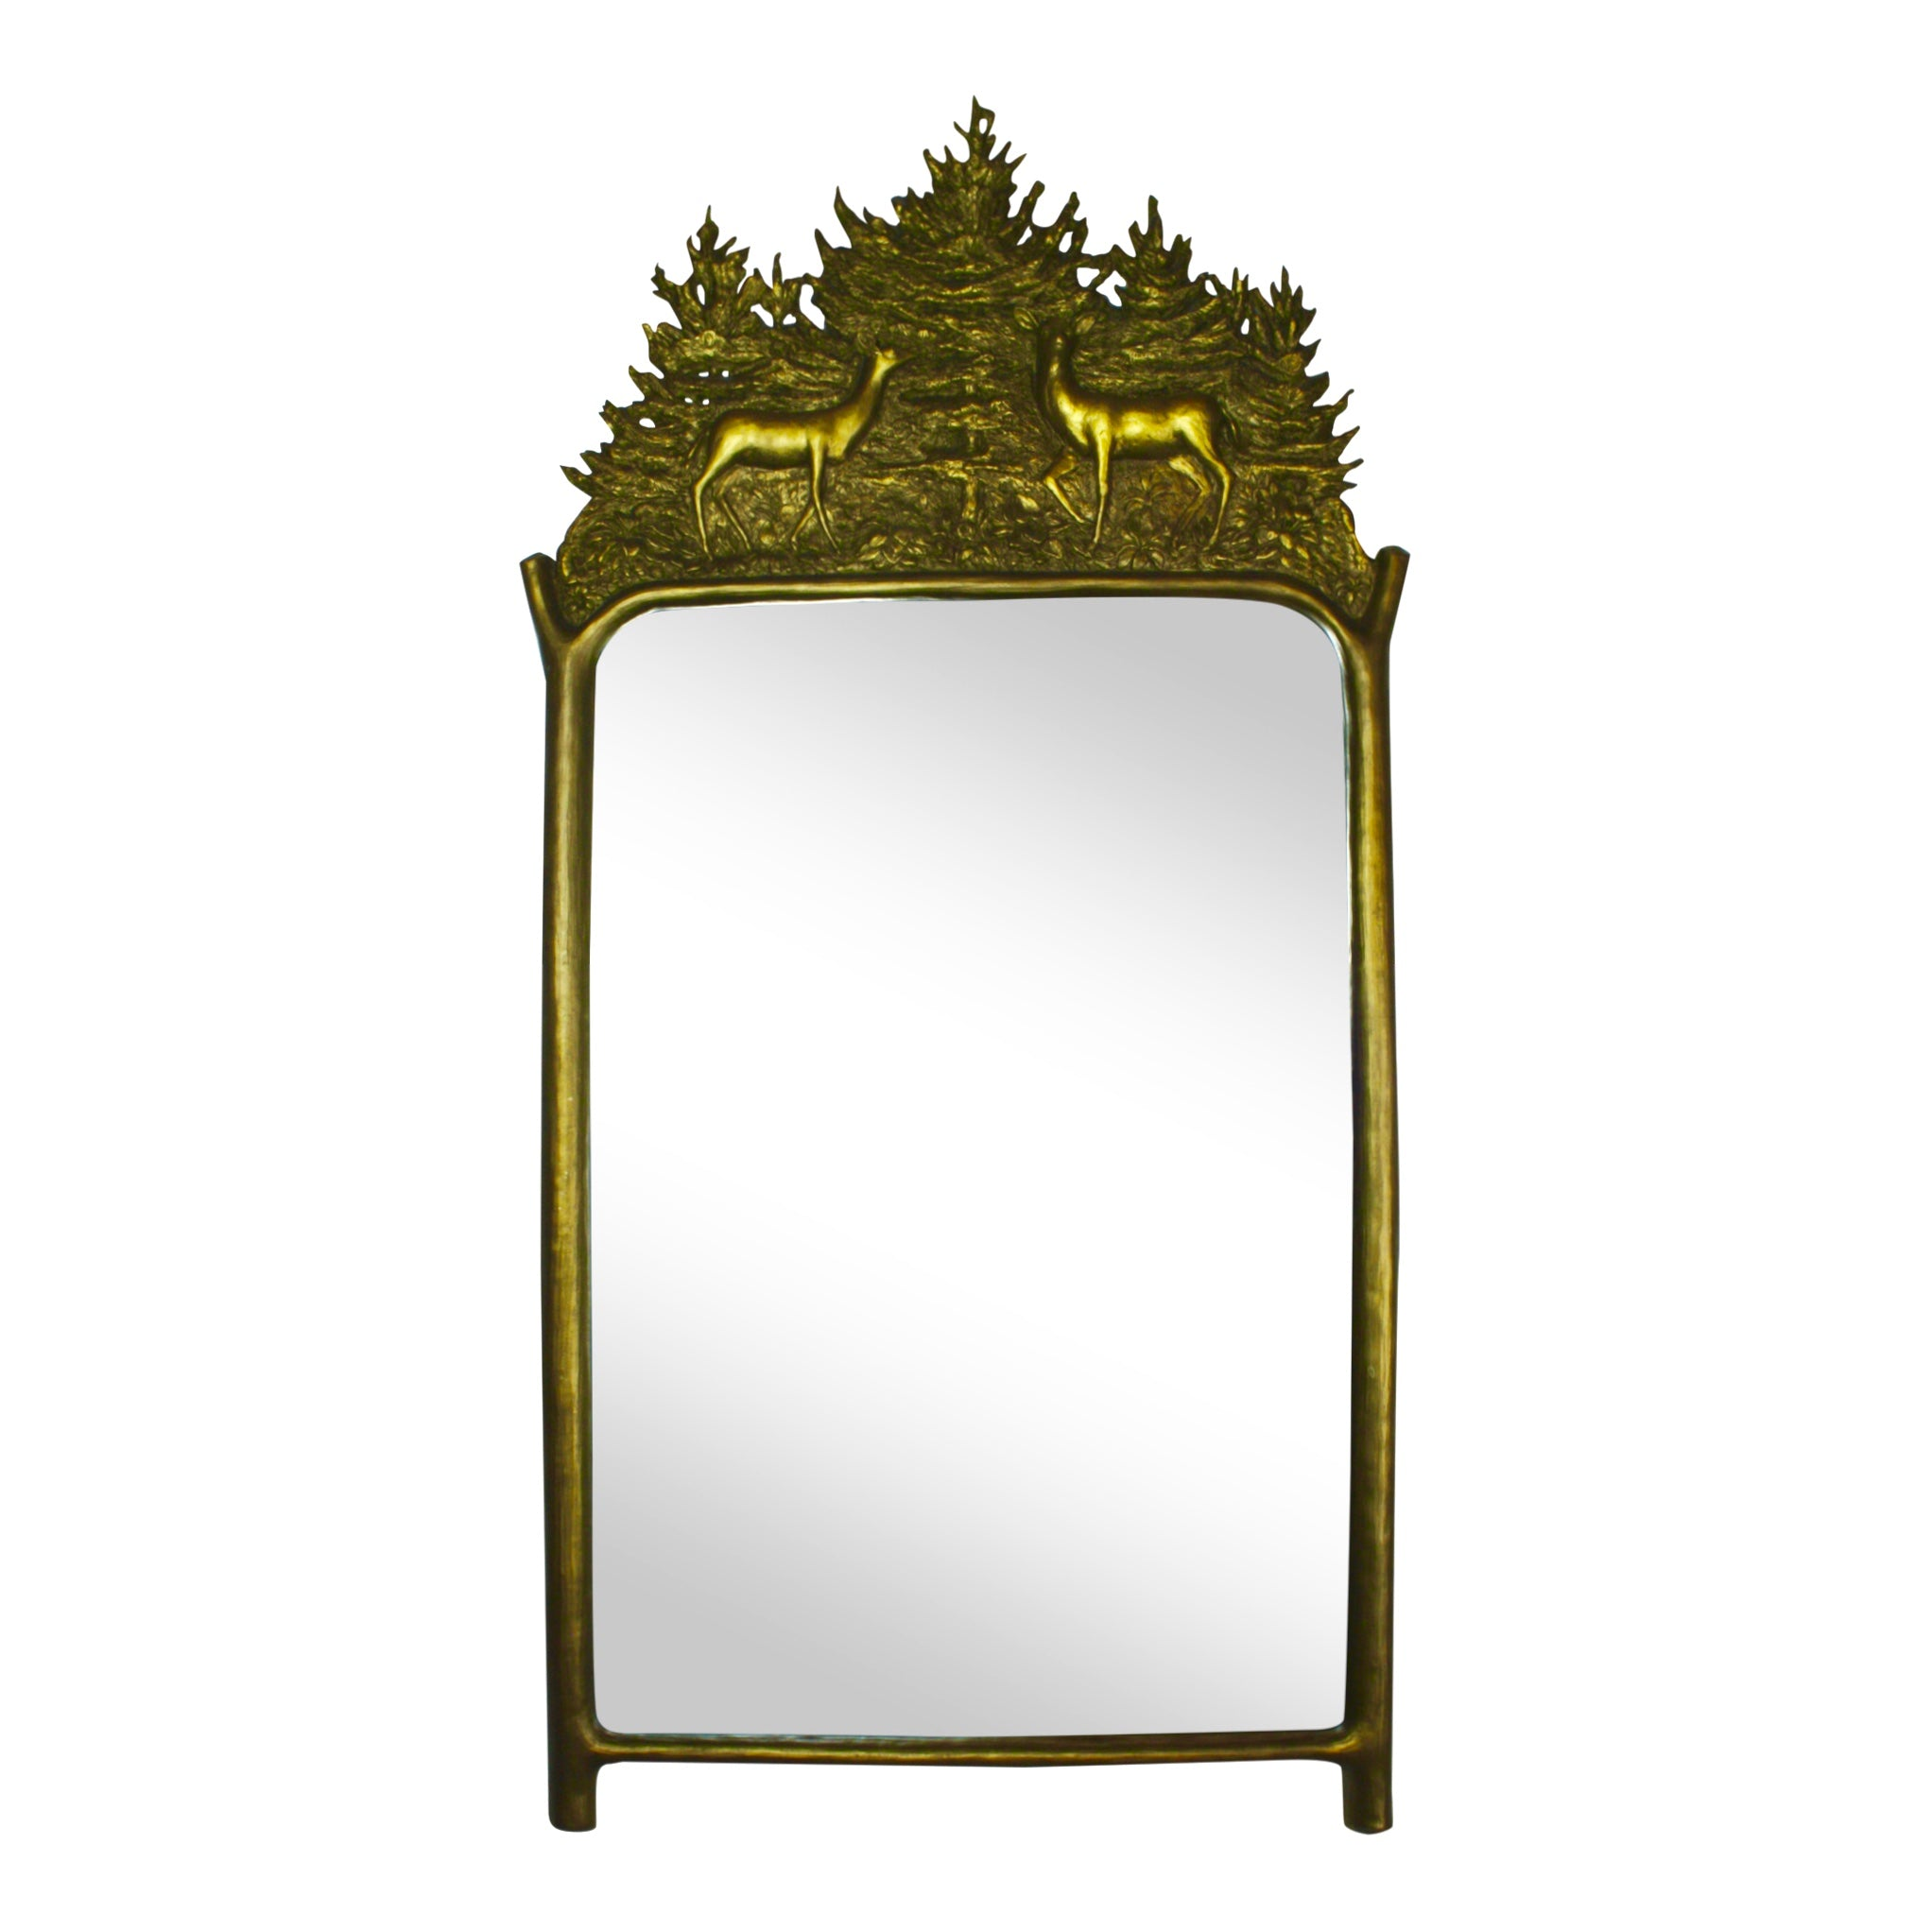 Carver's Guild Mirror with Bronze Leaf Finish